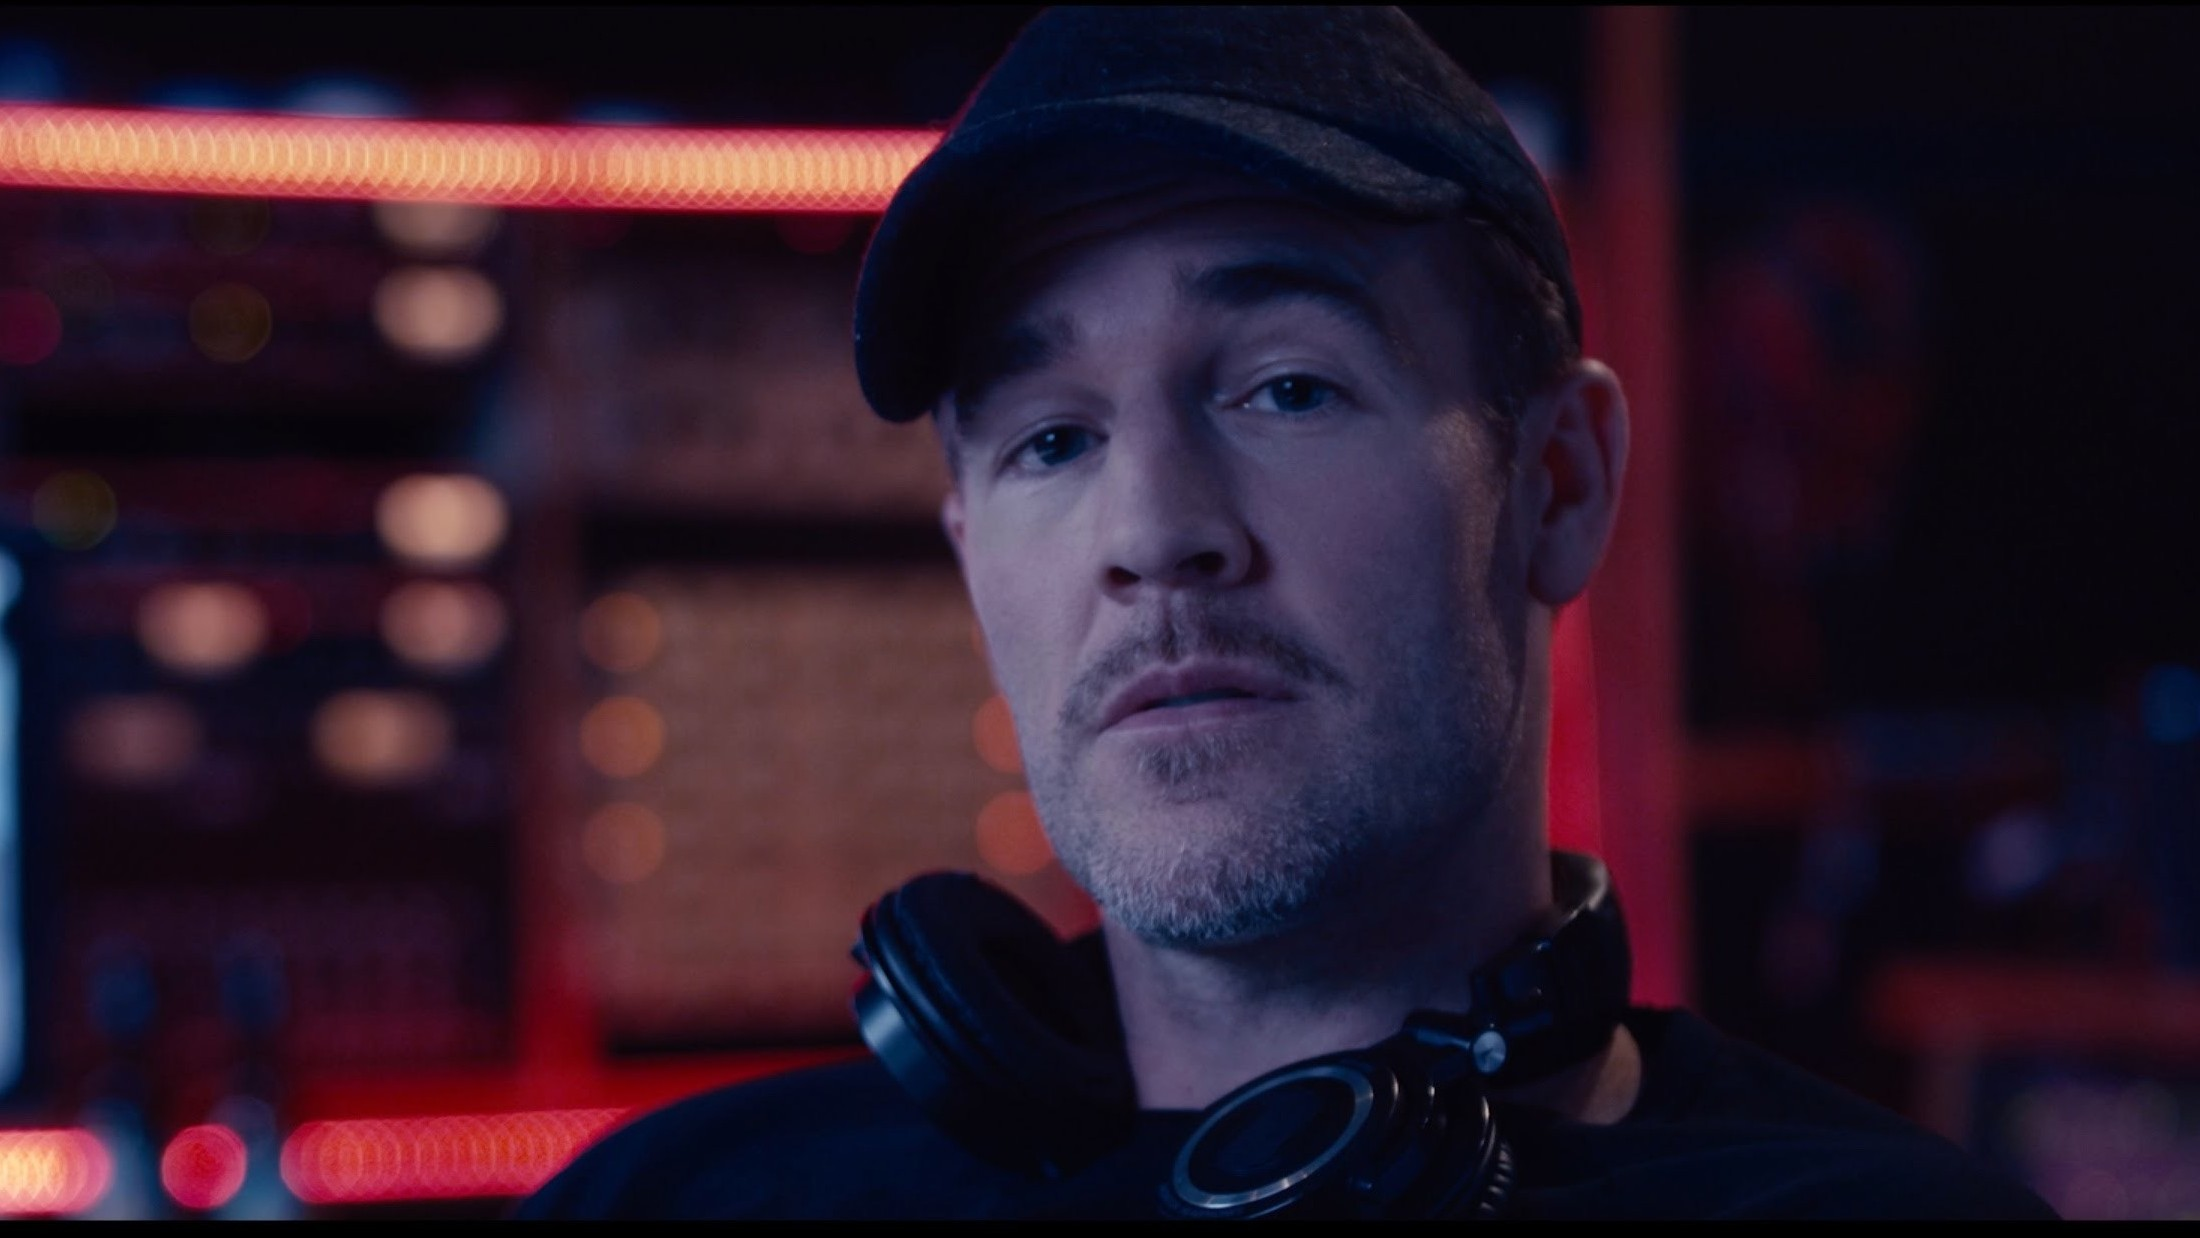 Five Questions We Have For James Van Der Beek After Watching His Mad Decent Commercial